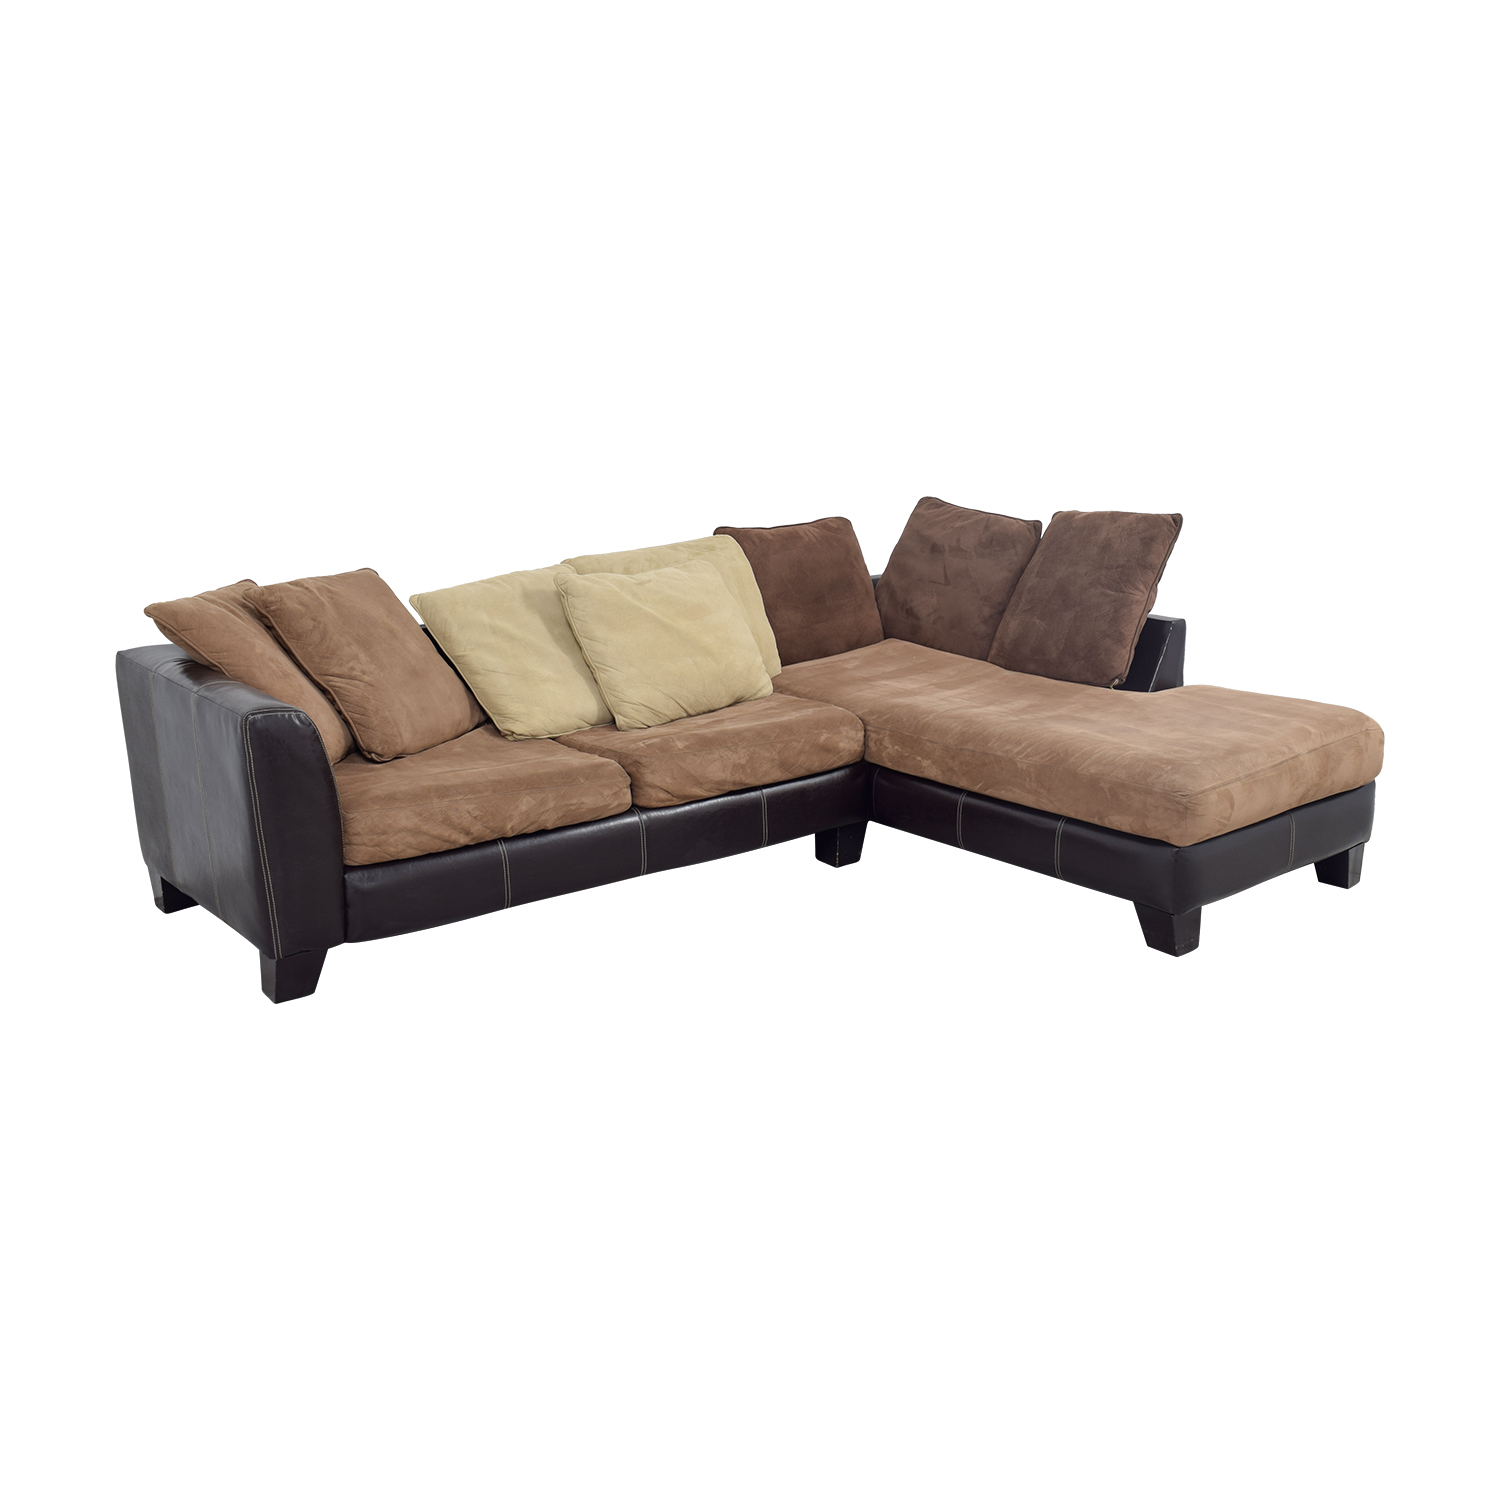 8642 transitional sectional sofa with chaise by albany 6 tapered legs industries capri brown